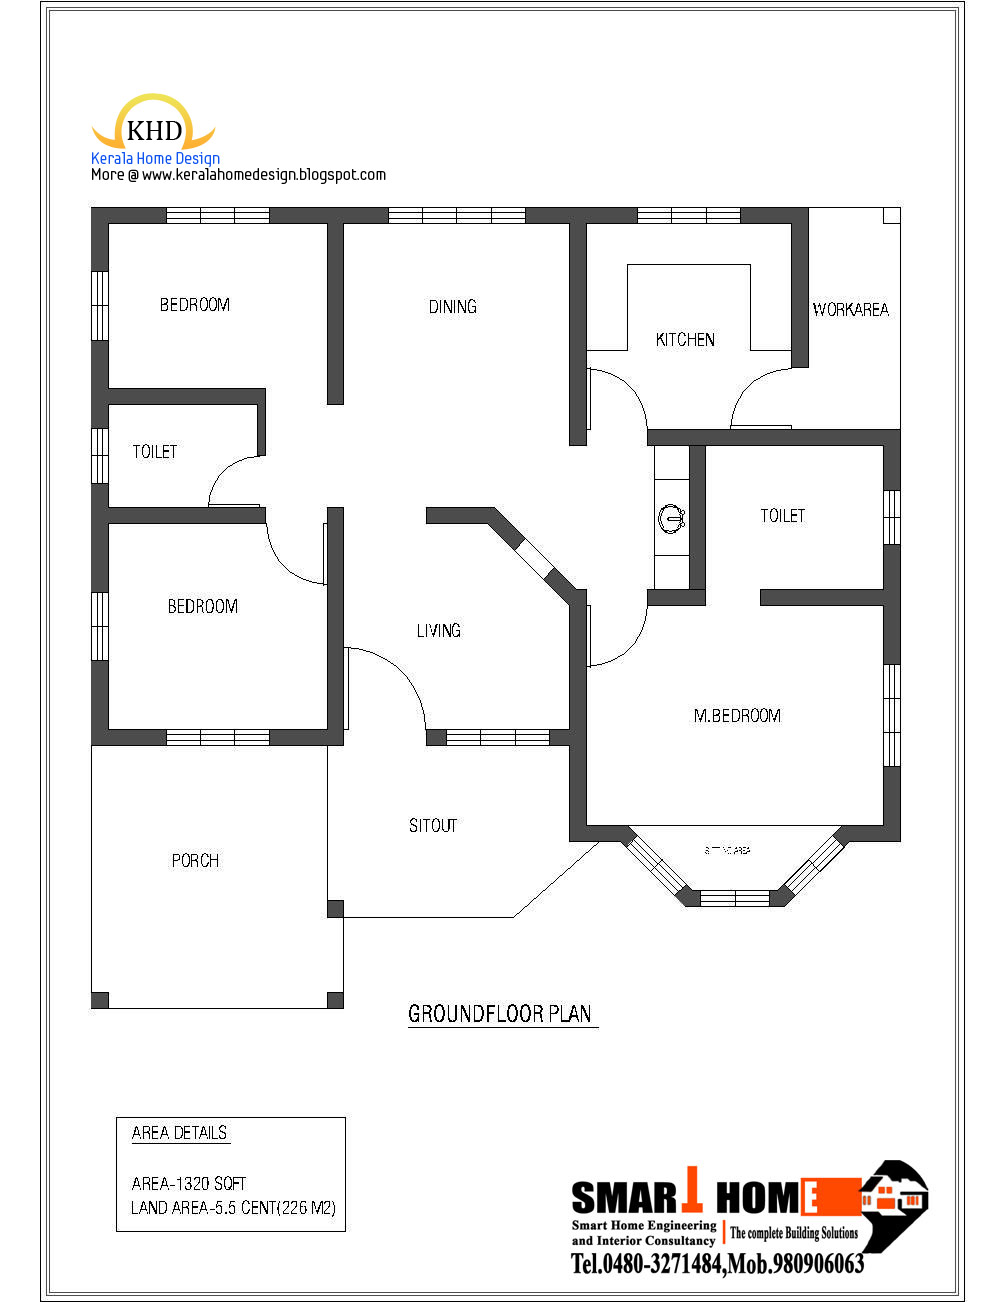 Single floor house plan and elevation 1320 sq ft kerala home design and floor plans One floor house plans